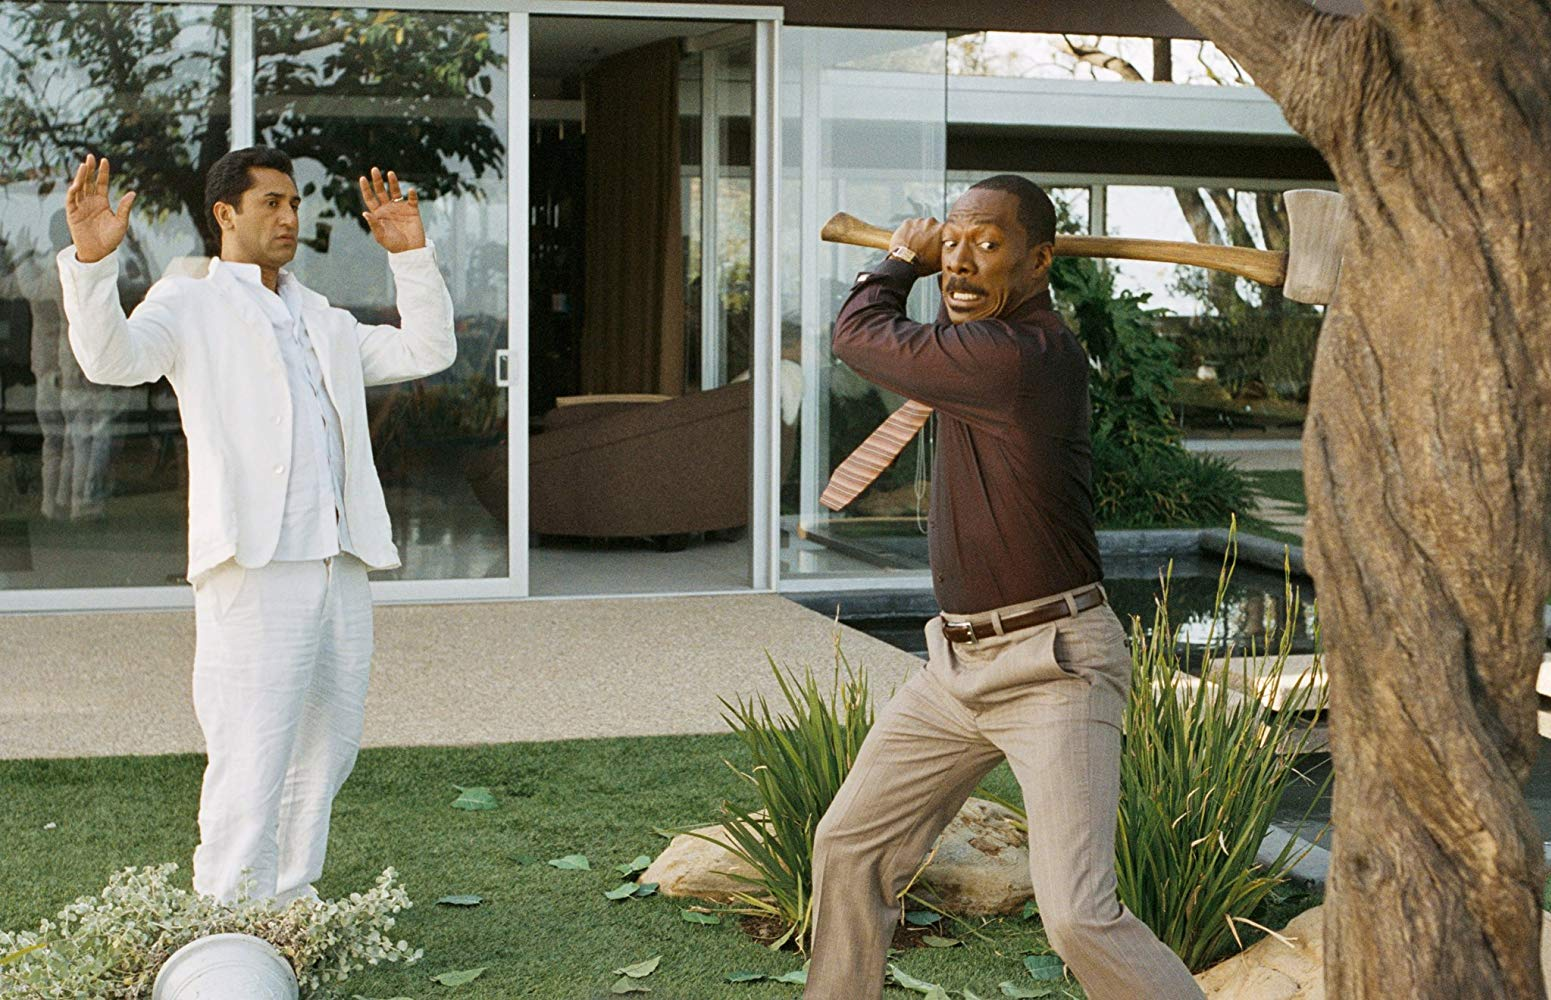 Guru Cliff Curtis looks on as Eddie Murphy goes to attack the tree with an axe in A Thousand Words (2012)